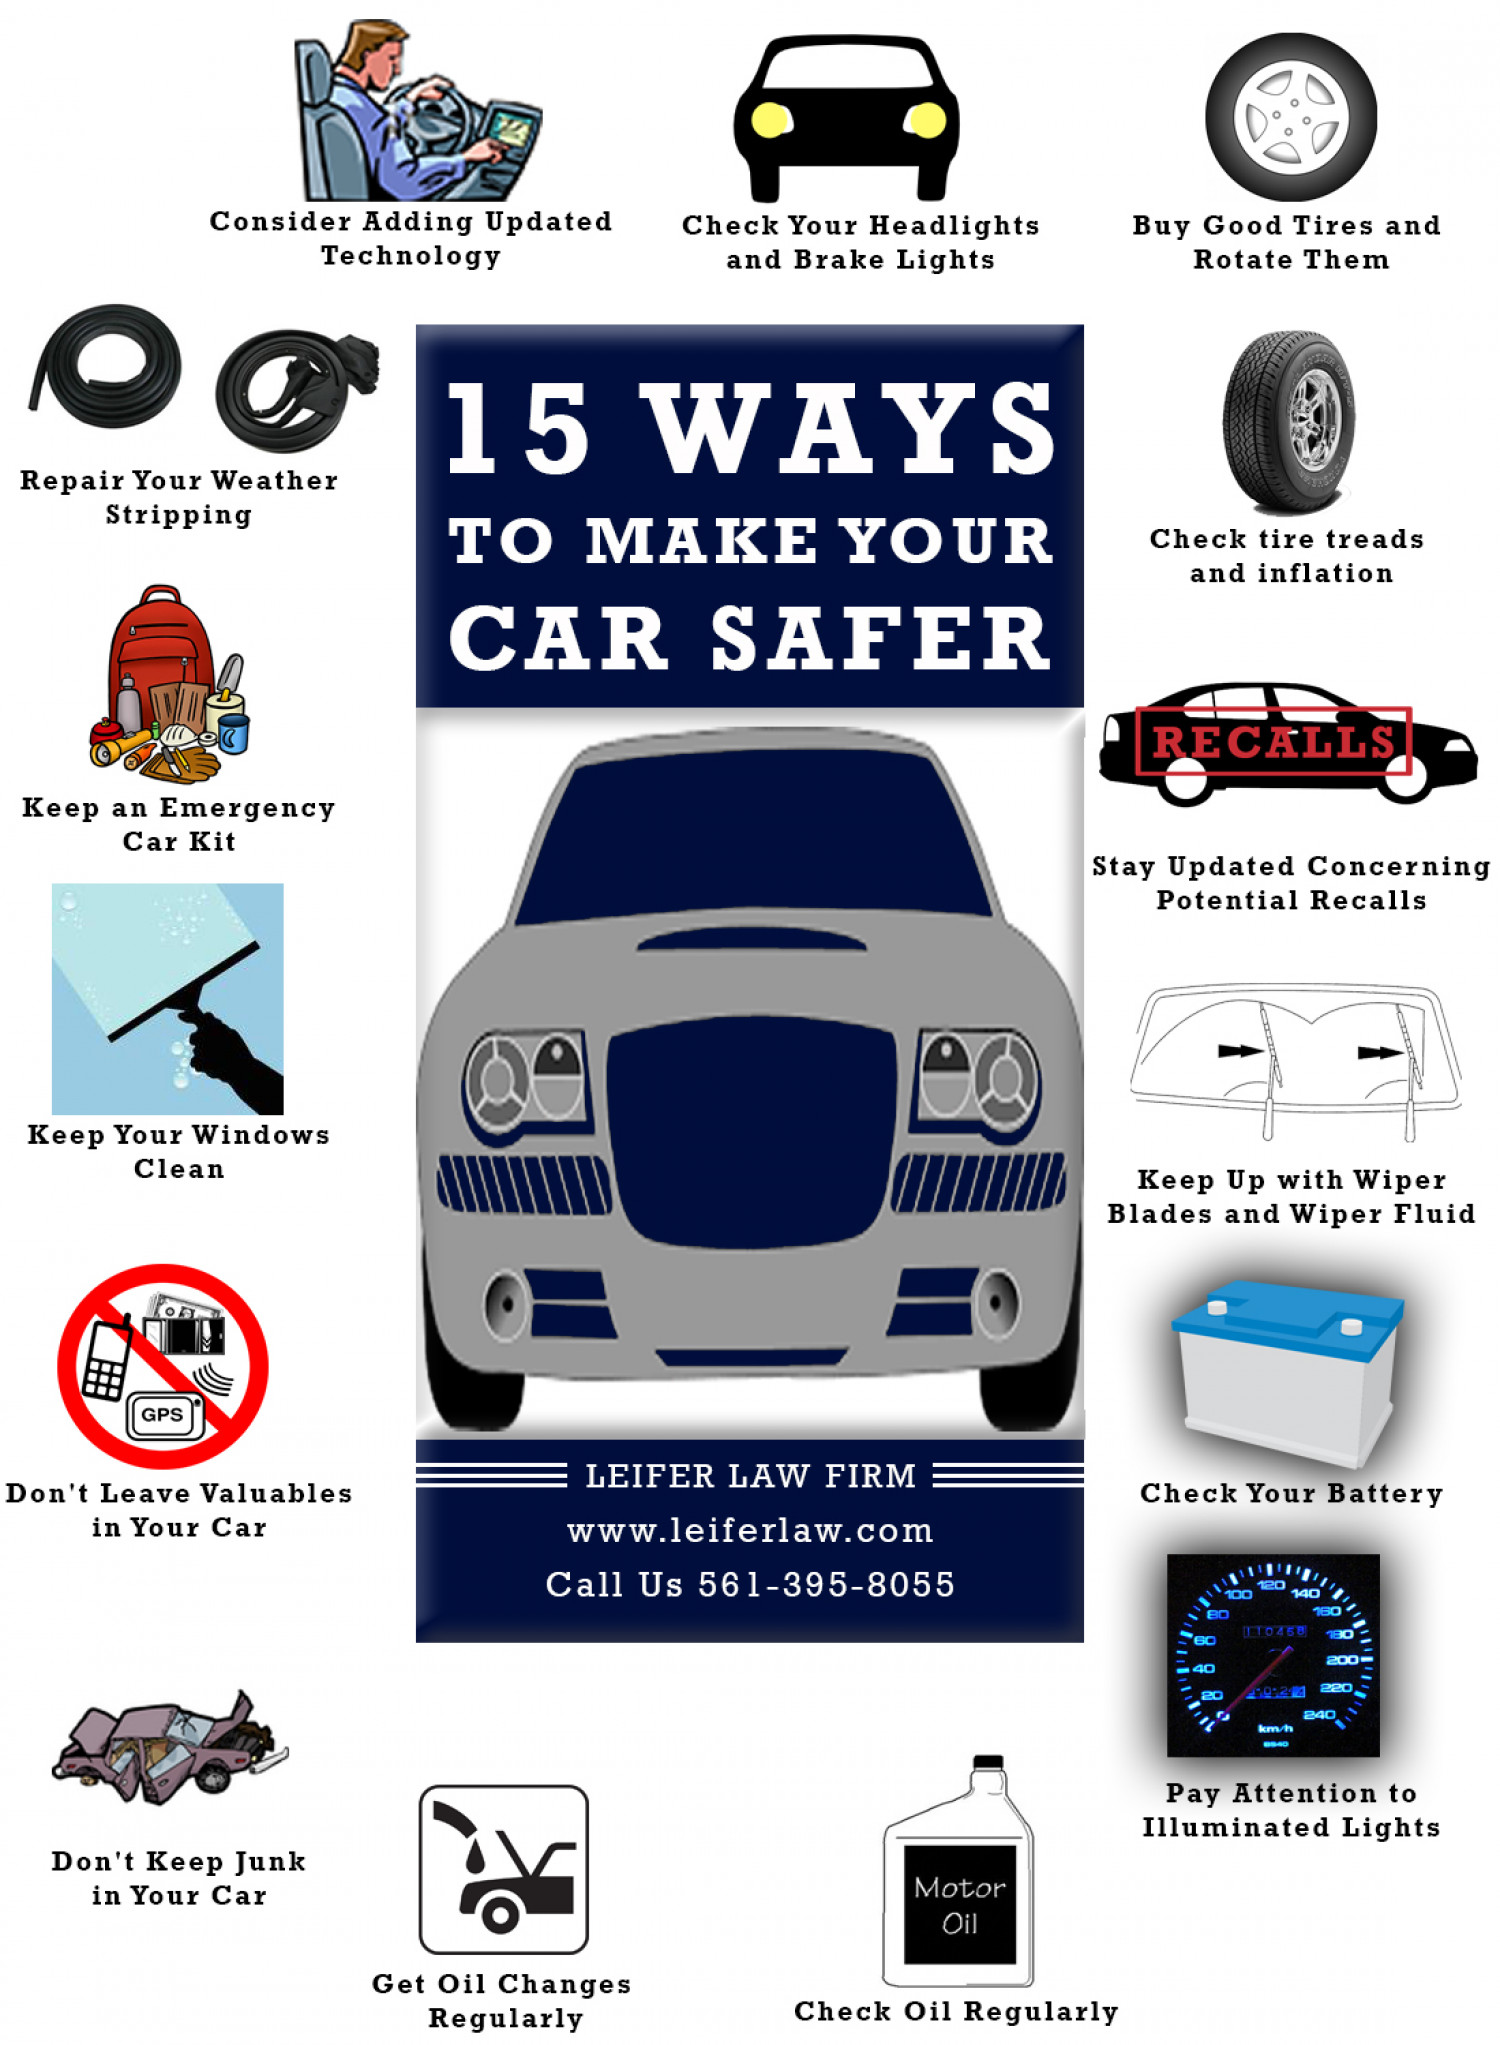 15 Ways to Make Your Car Safer | Visual.ly